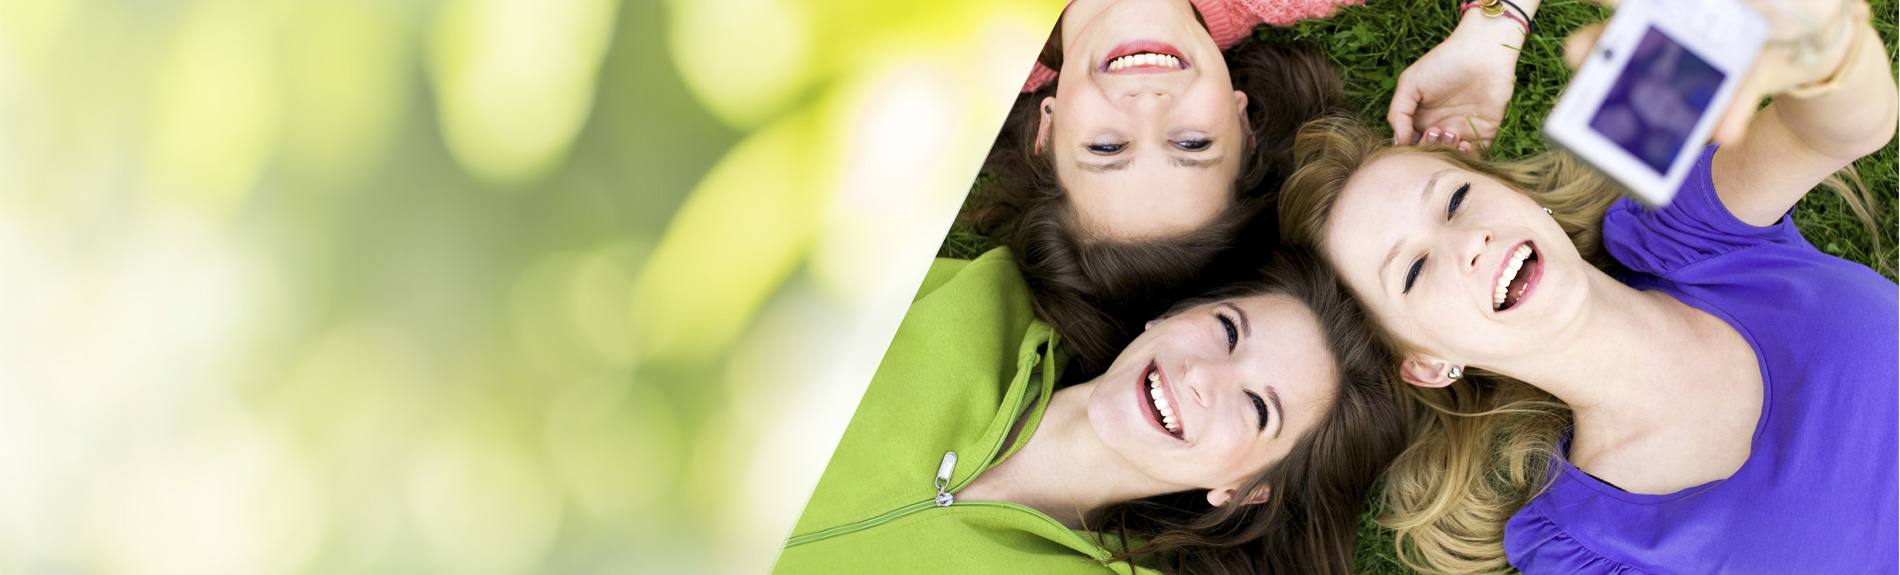 Three girls lying in grass with camera taking selfies